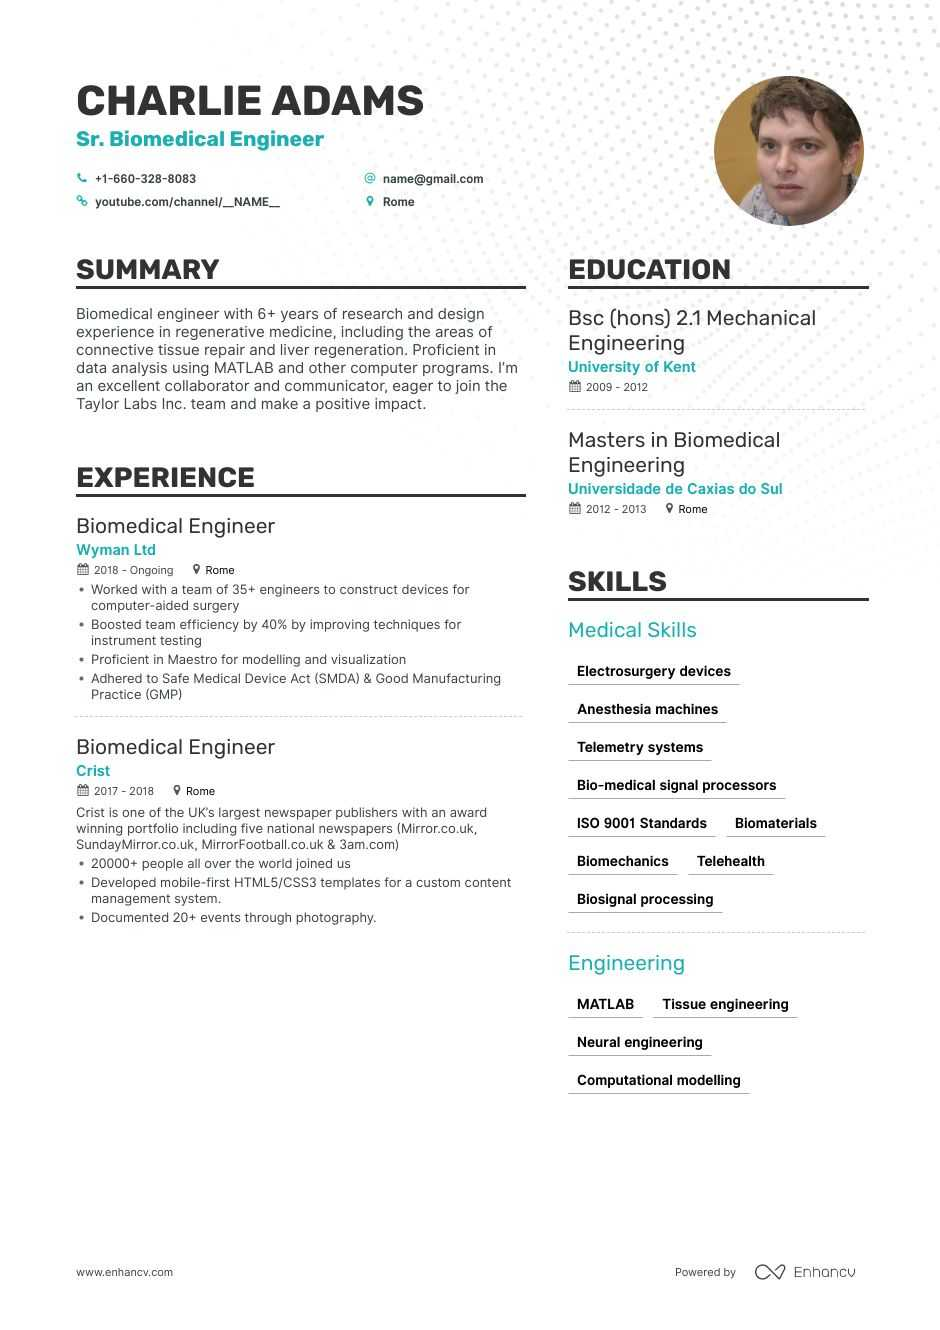 Biomedical Engineer Resume 8 Step Ultimate Guide For 2020 Enhancv